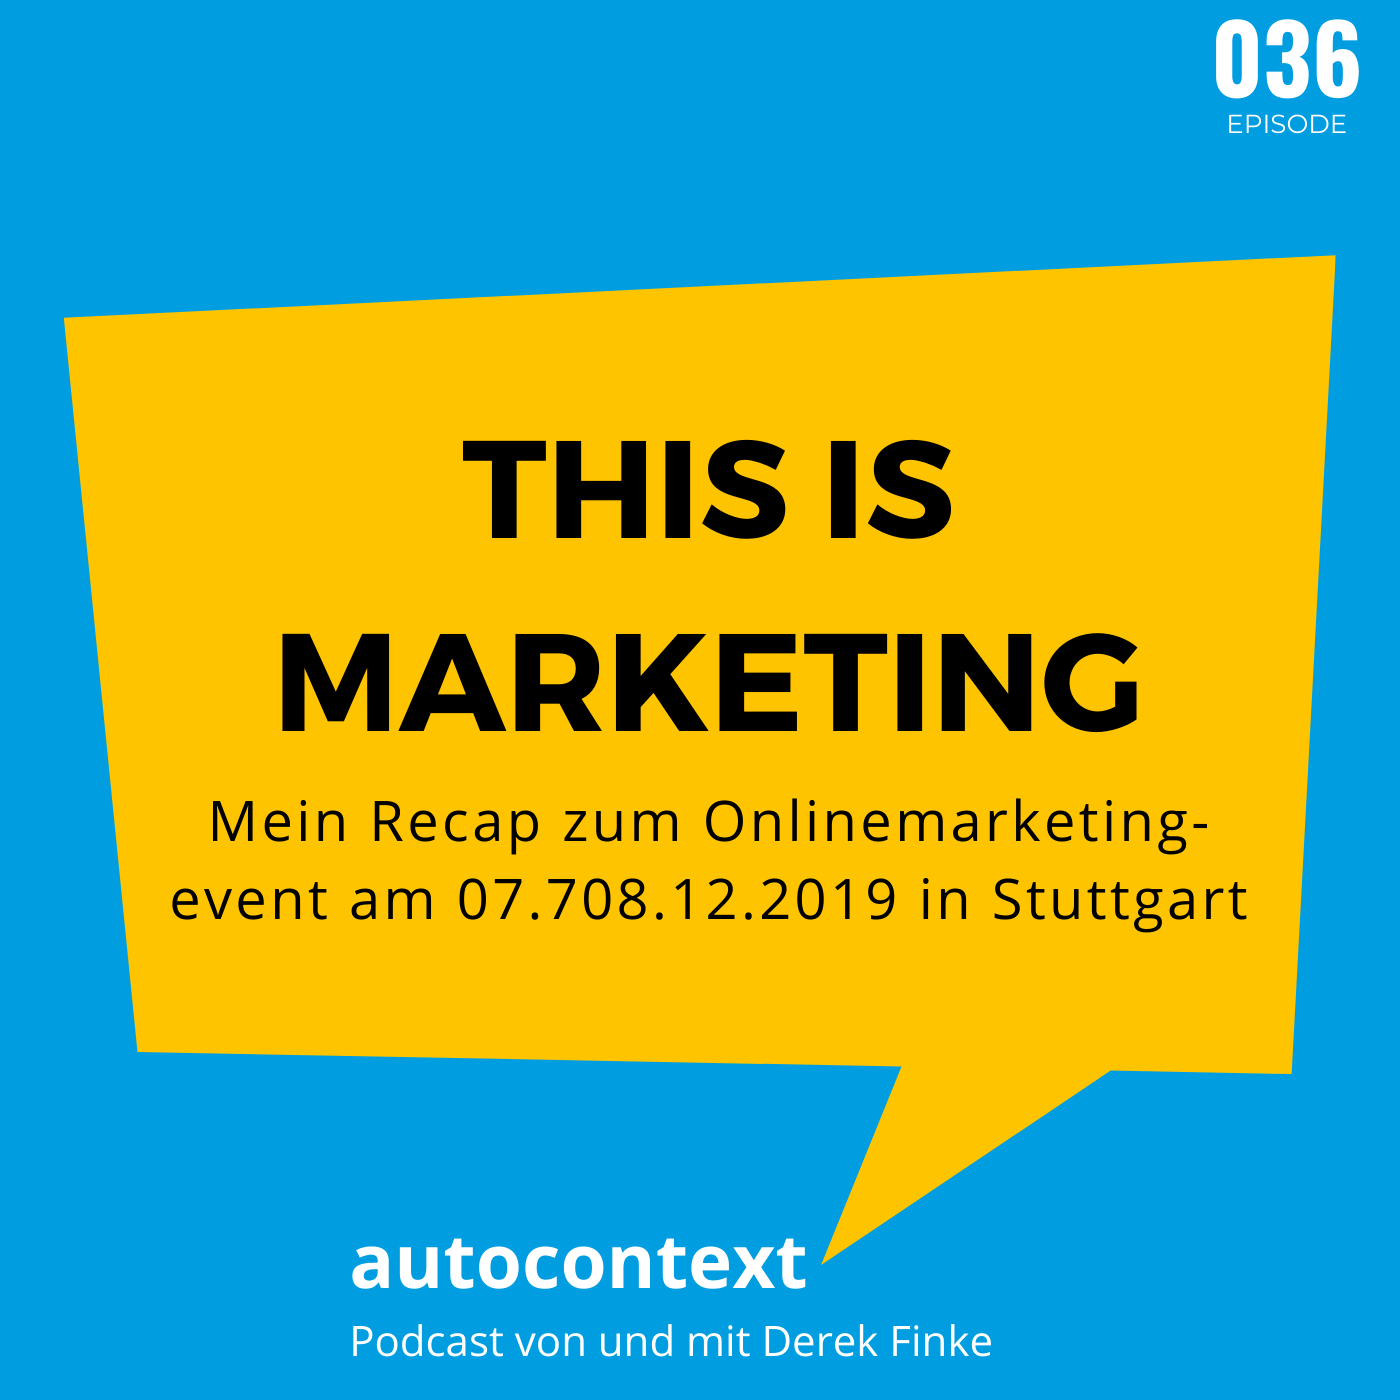 This is marketing - Mein Recap